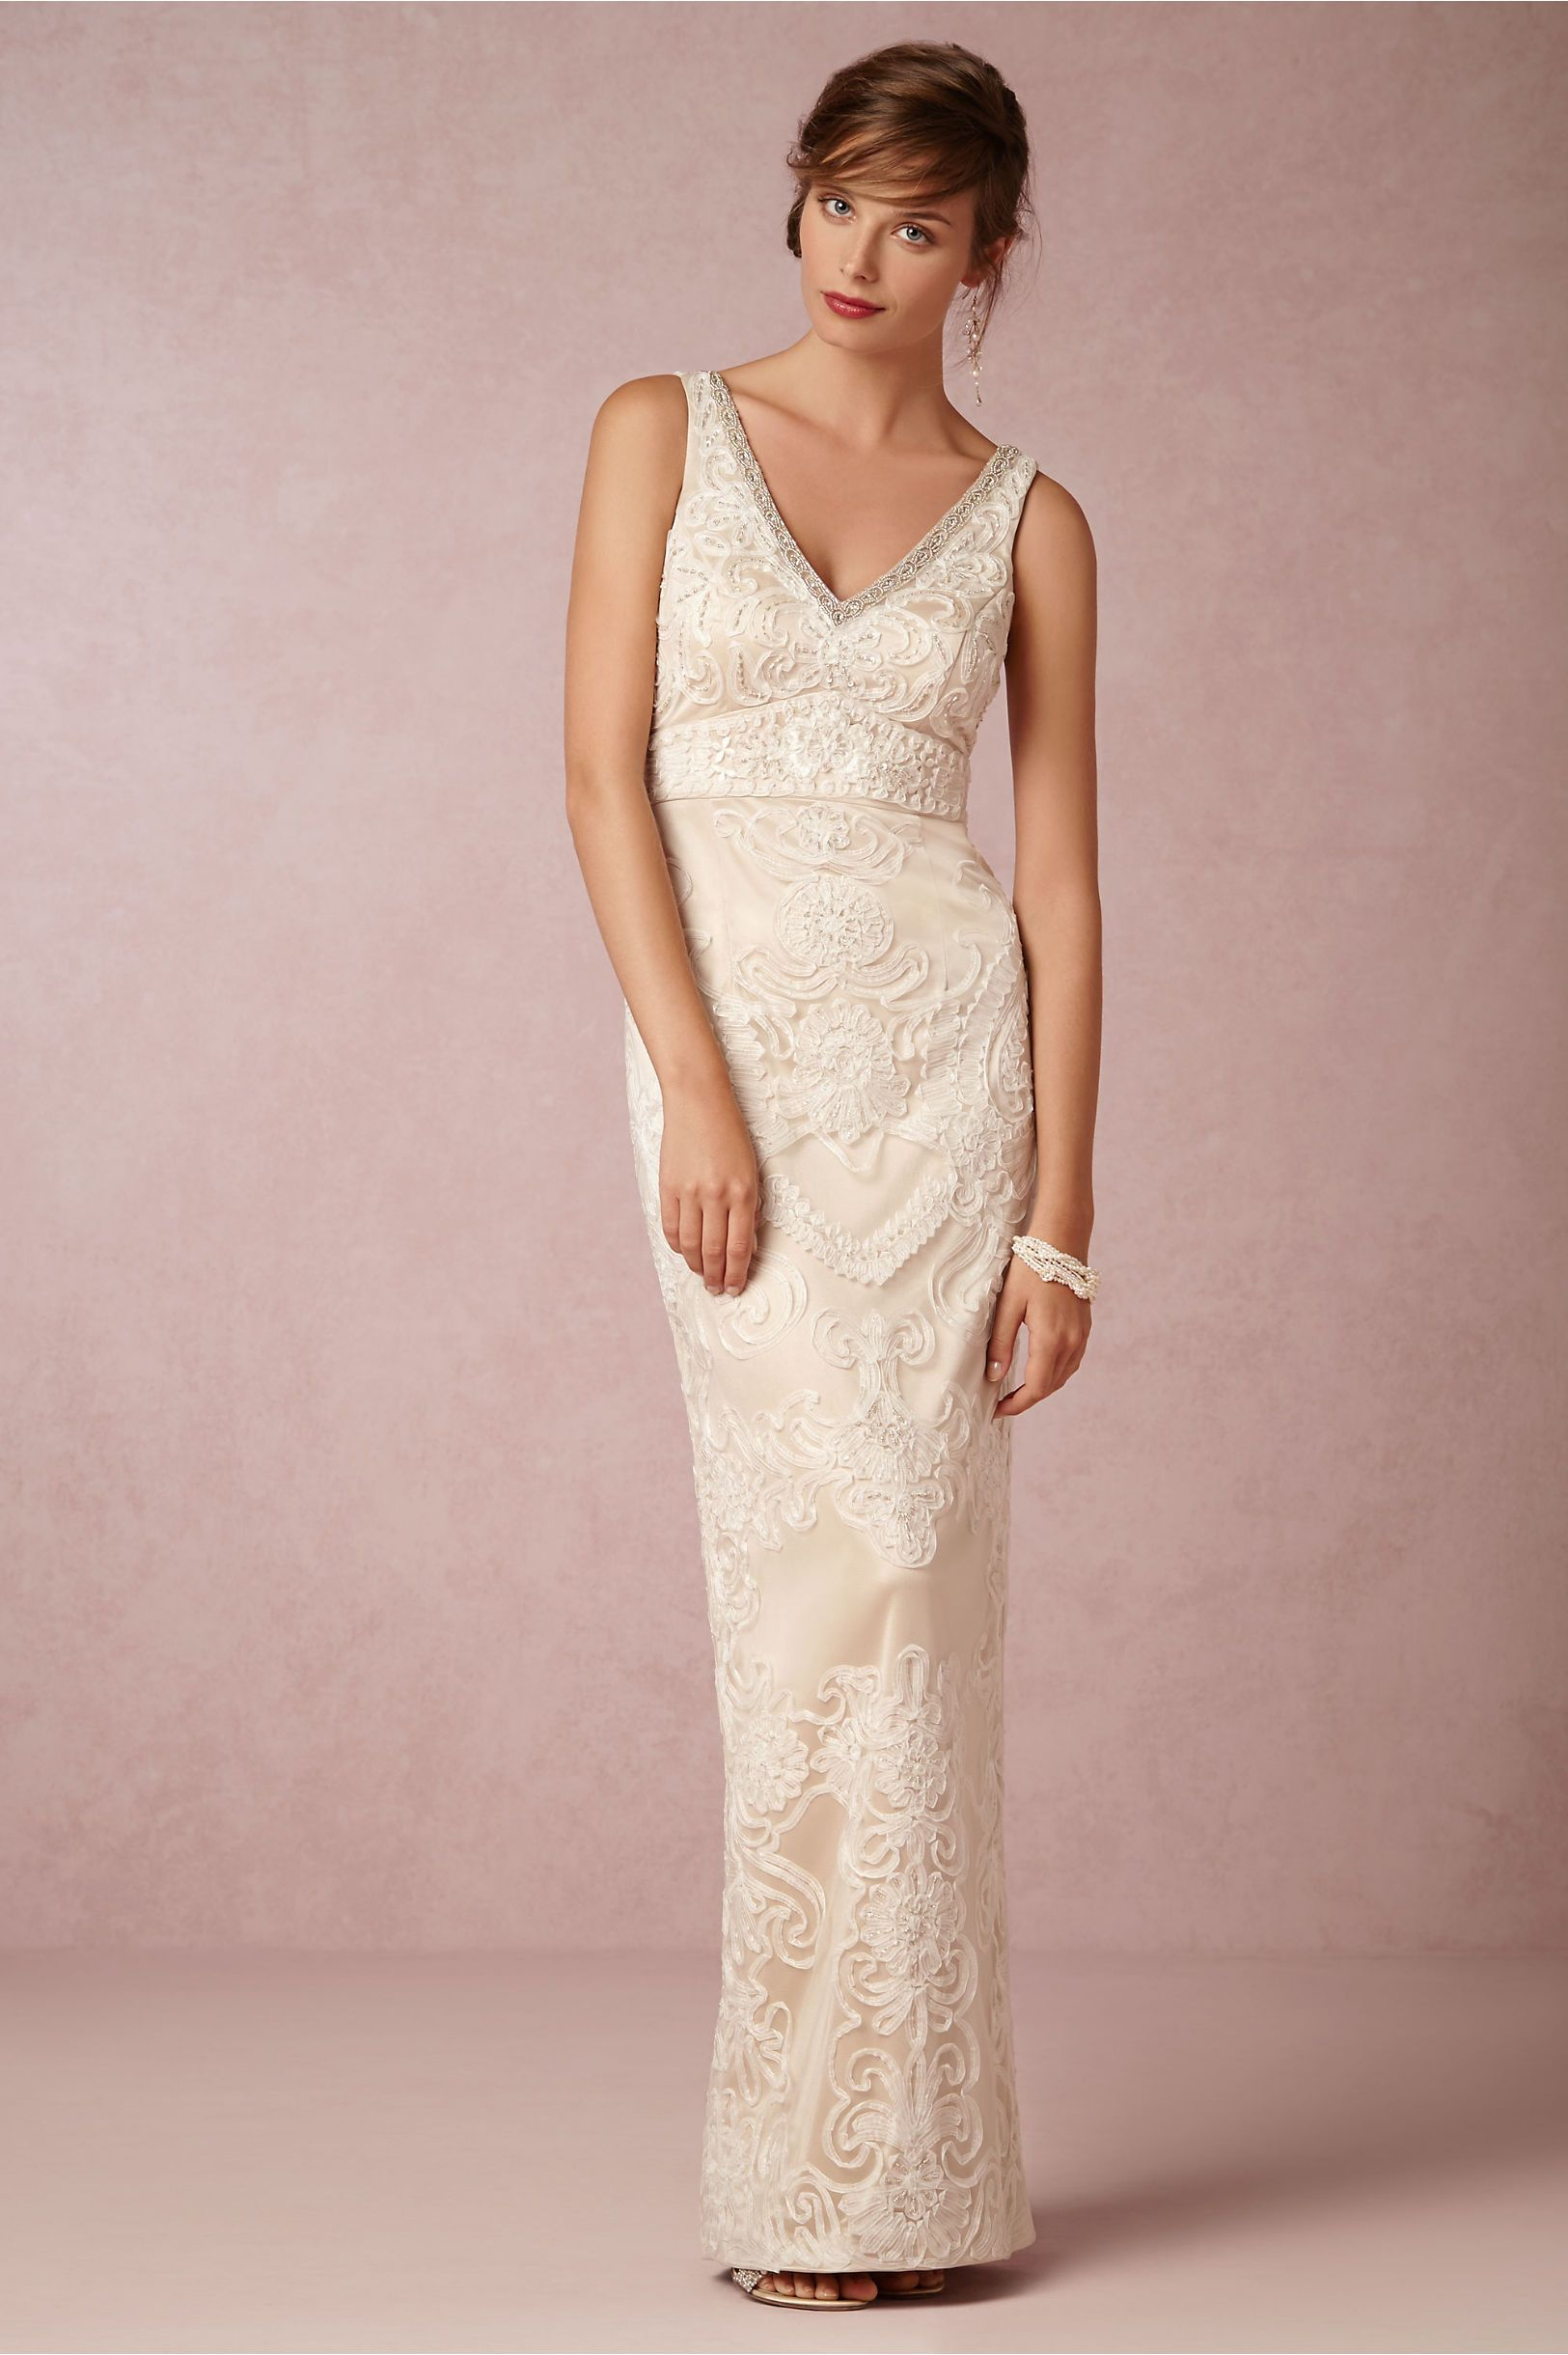 Adele gown in sale wedding dresses at bhldn is this the dress we adele gown in sale wedding dresses at bhldn is this the dress we saw at ombrellifo Images